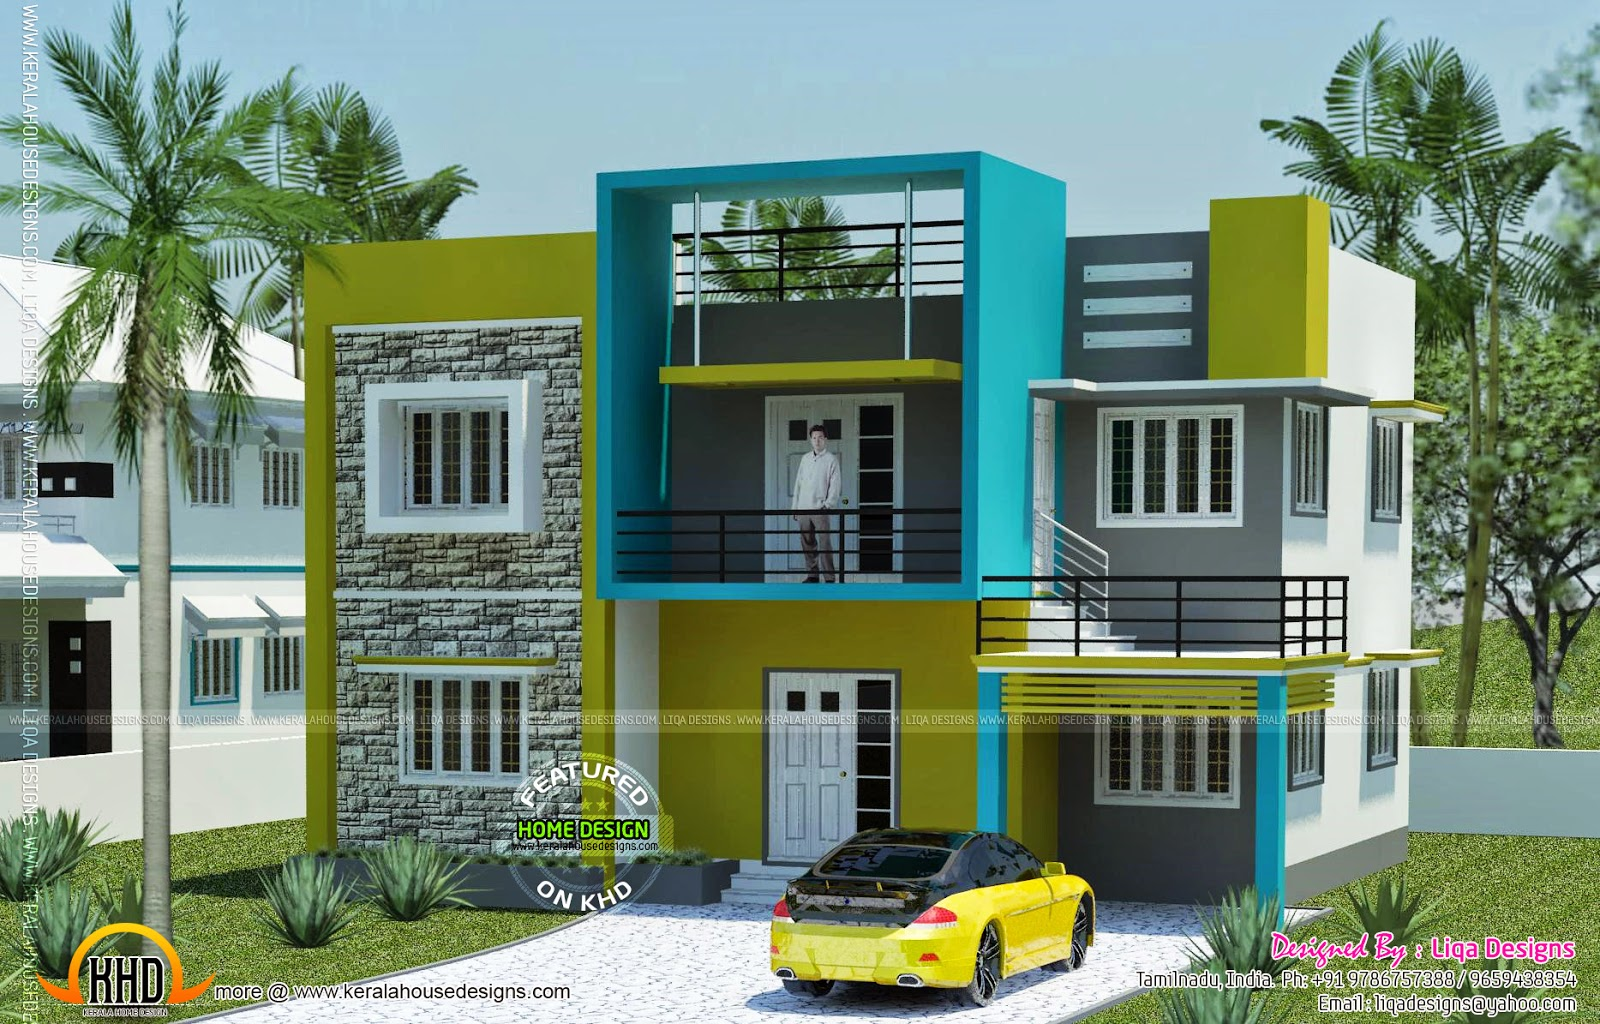 Home portico design in tamilnadu - Home design